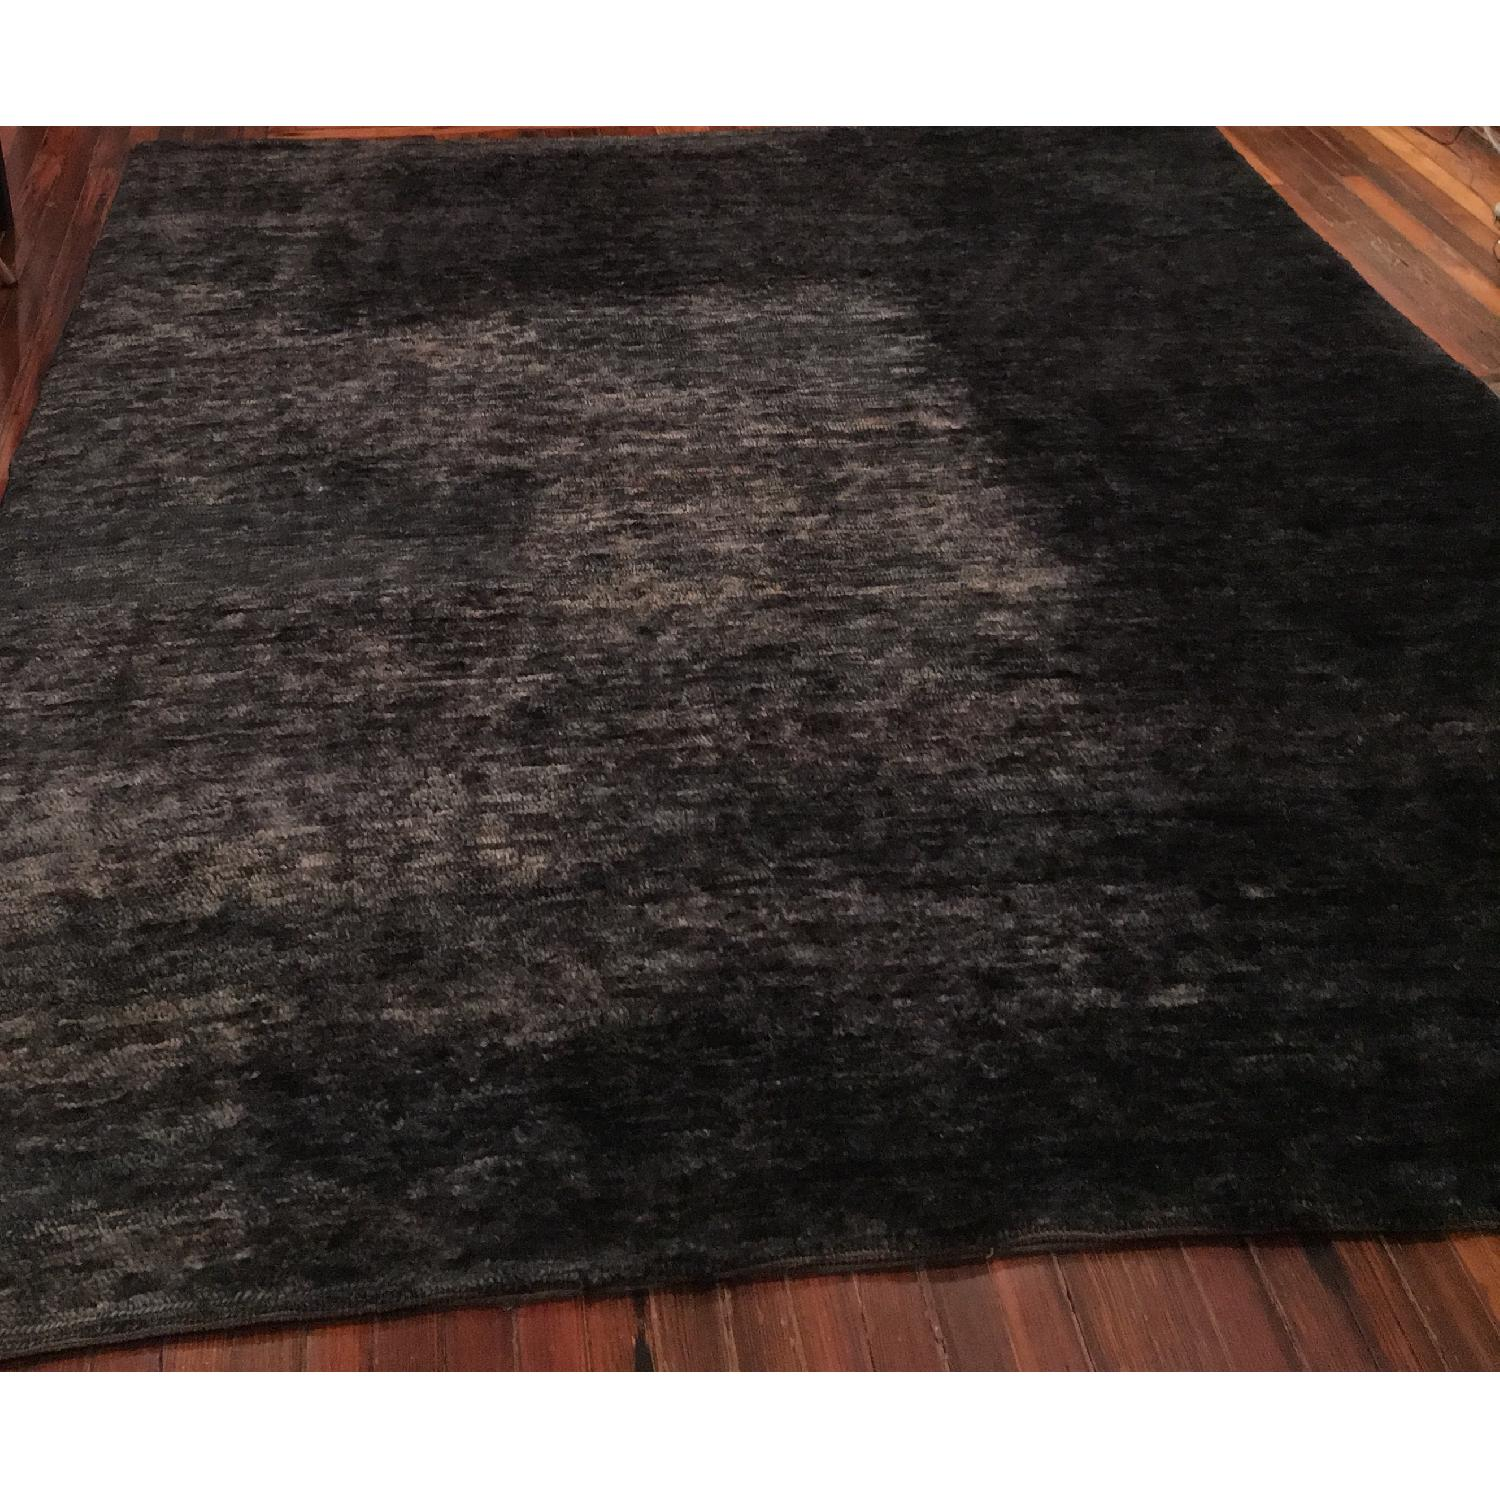 Rugs USA Charcoal Jute Area Rug - image-3